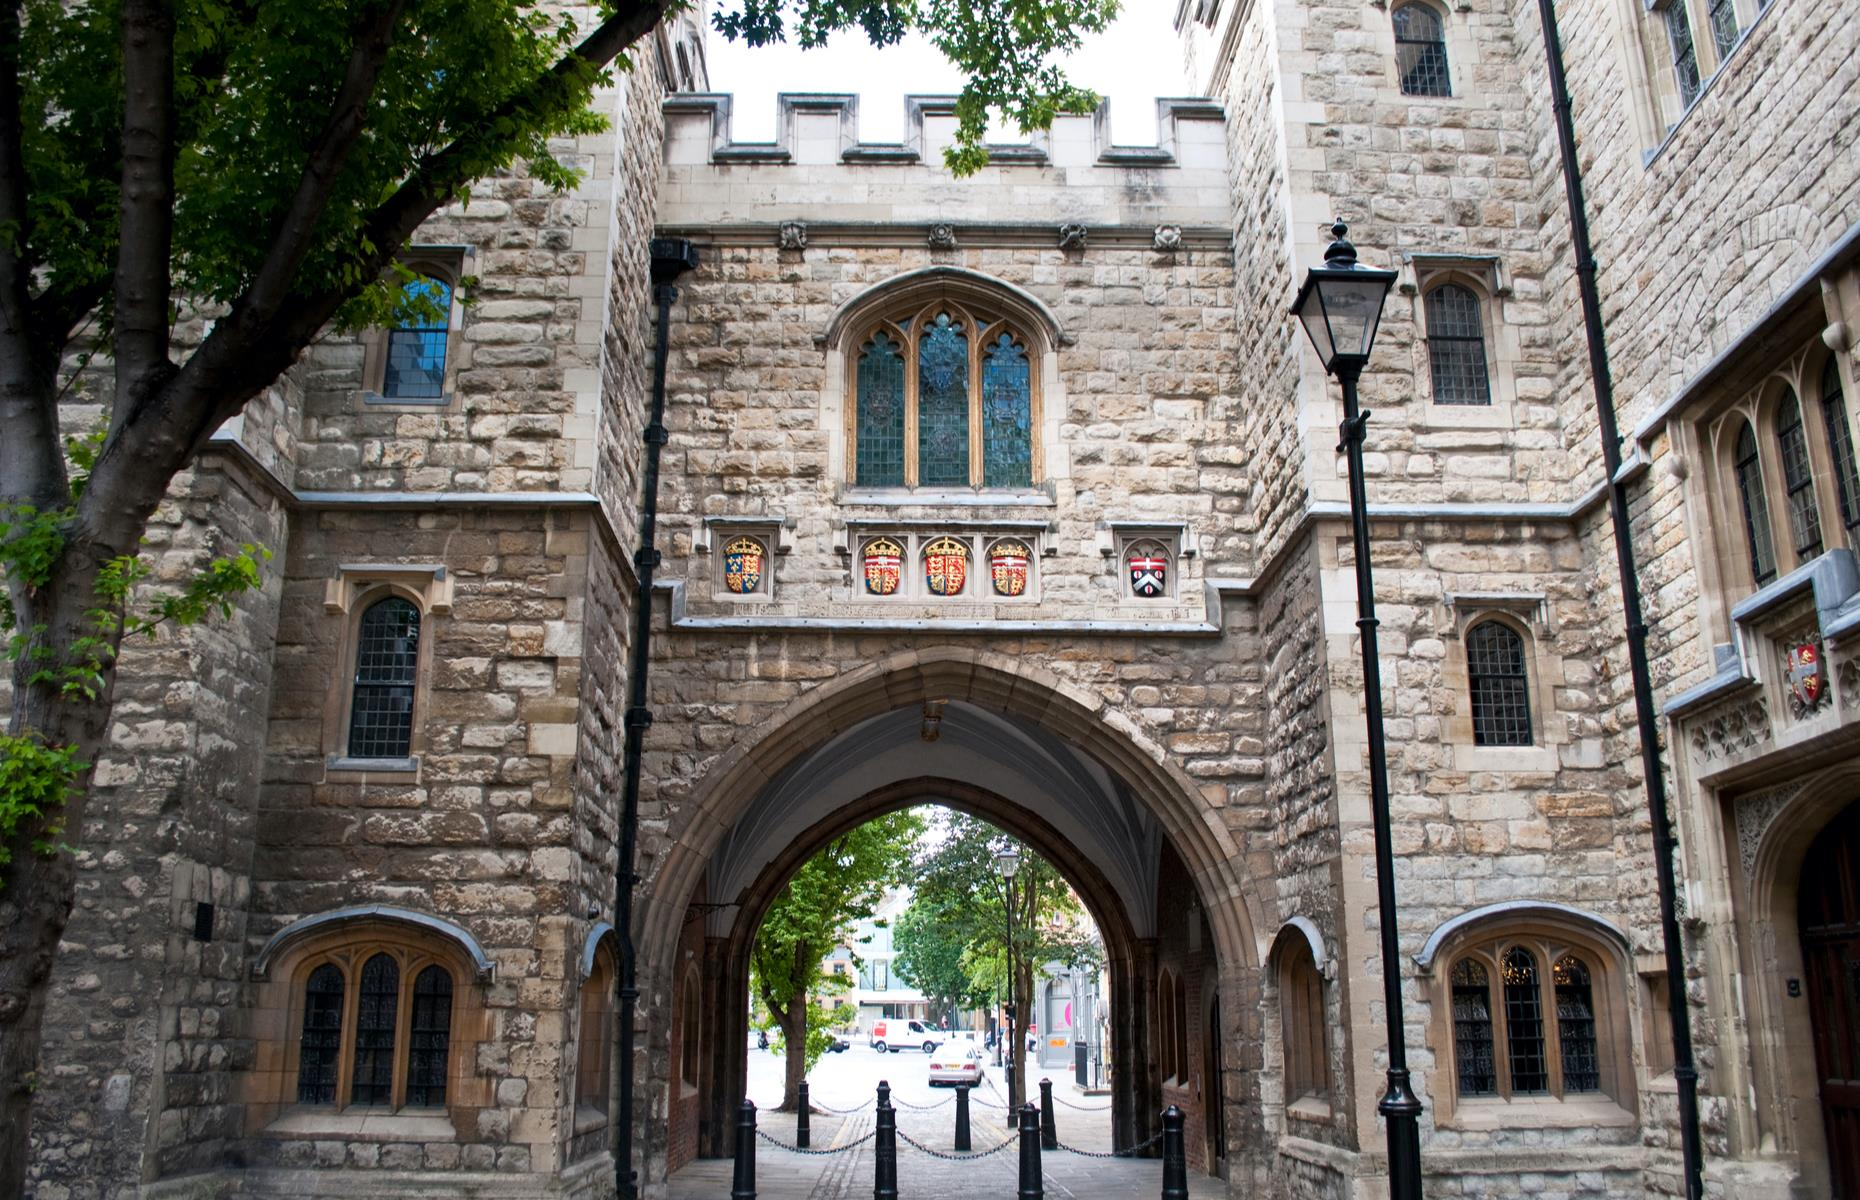 Slide 16 of 27: This impressive ancient gateway is an incongruous site amid the office blocks of Clerkenwell. The historic home of the Order of St John, it was built in 1504 as the southern gatehouse to the Priory at Clerkenwell, which was founded in the 1140s. After Henry VIII's dissolution of monasteries, it had various uses including the offices of the Master of the Revels where 30 of Shakespeare's plays were licensed.